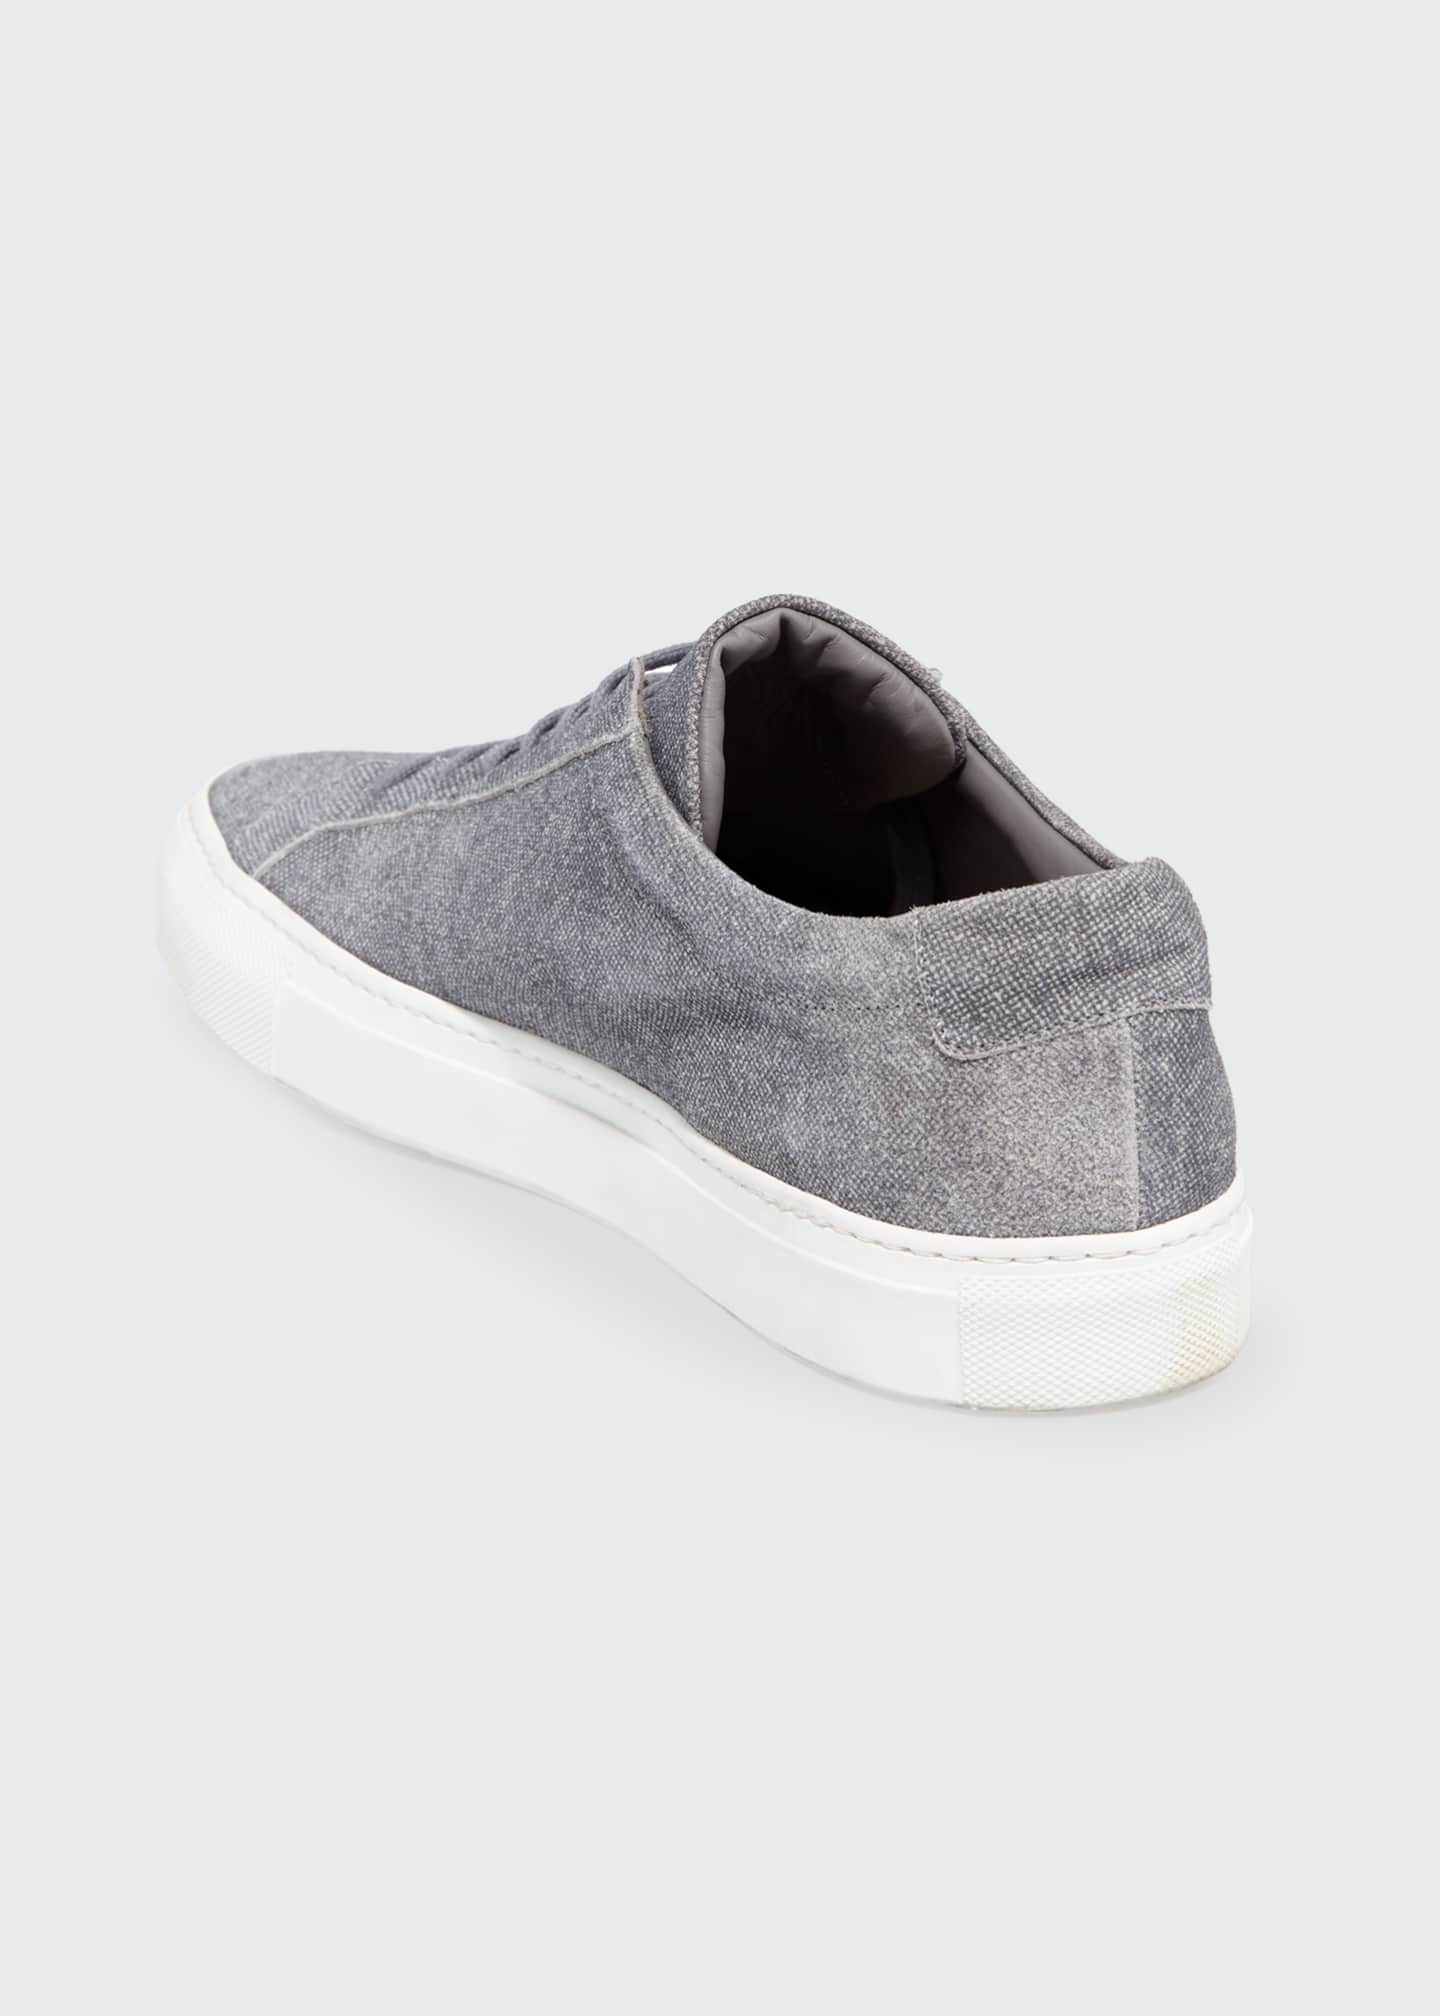 Image 4 of 4: Men's Achilles Patterned Suede Low-Top Sneakers